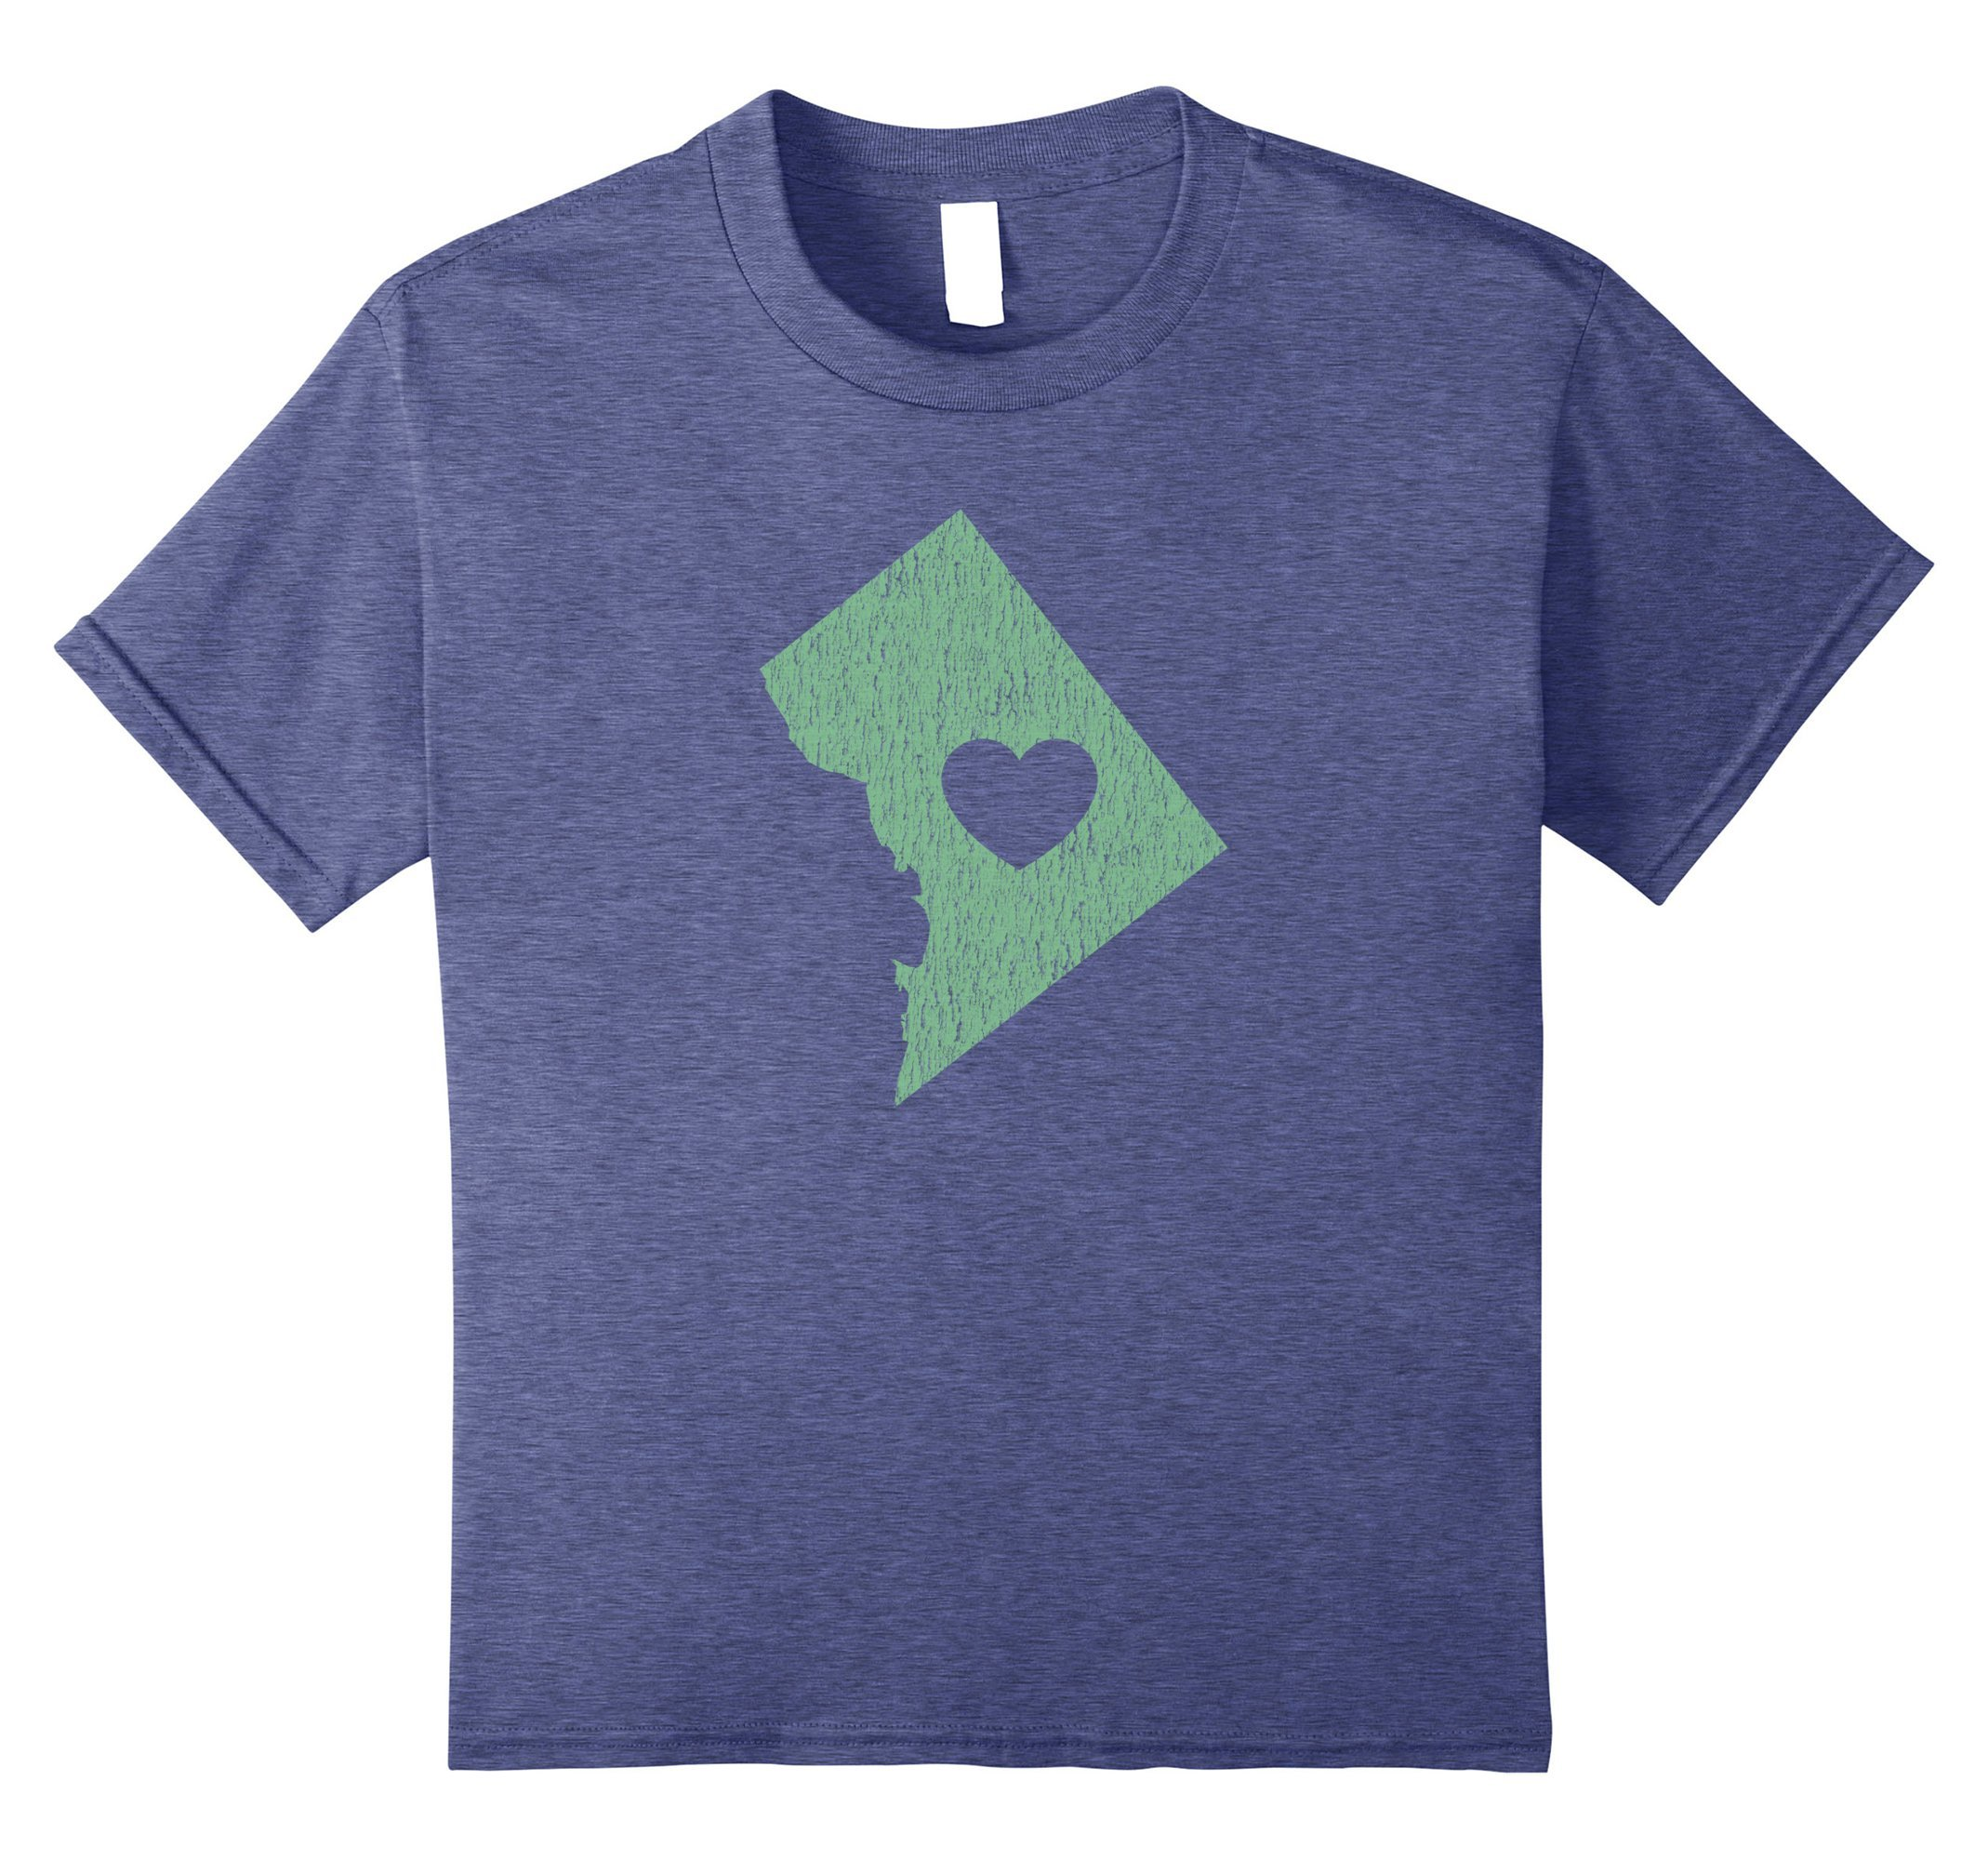 unisex-child Washington D.C. ''Love Heart'' T-Shirt (Gray Green) 12 Heather Blue by Washington DC Shirt / Washington D.C. Gifts (Image #1)